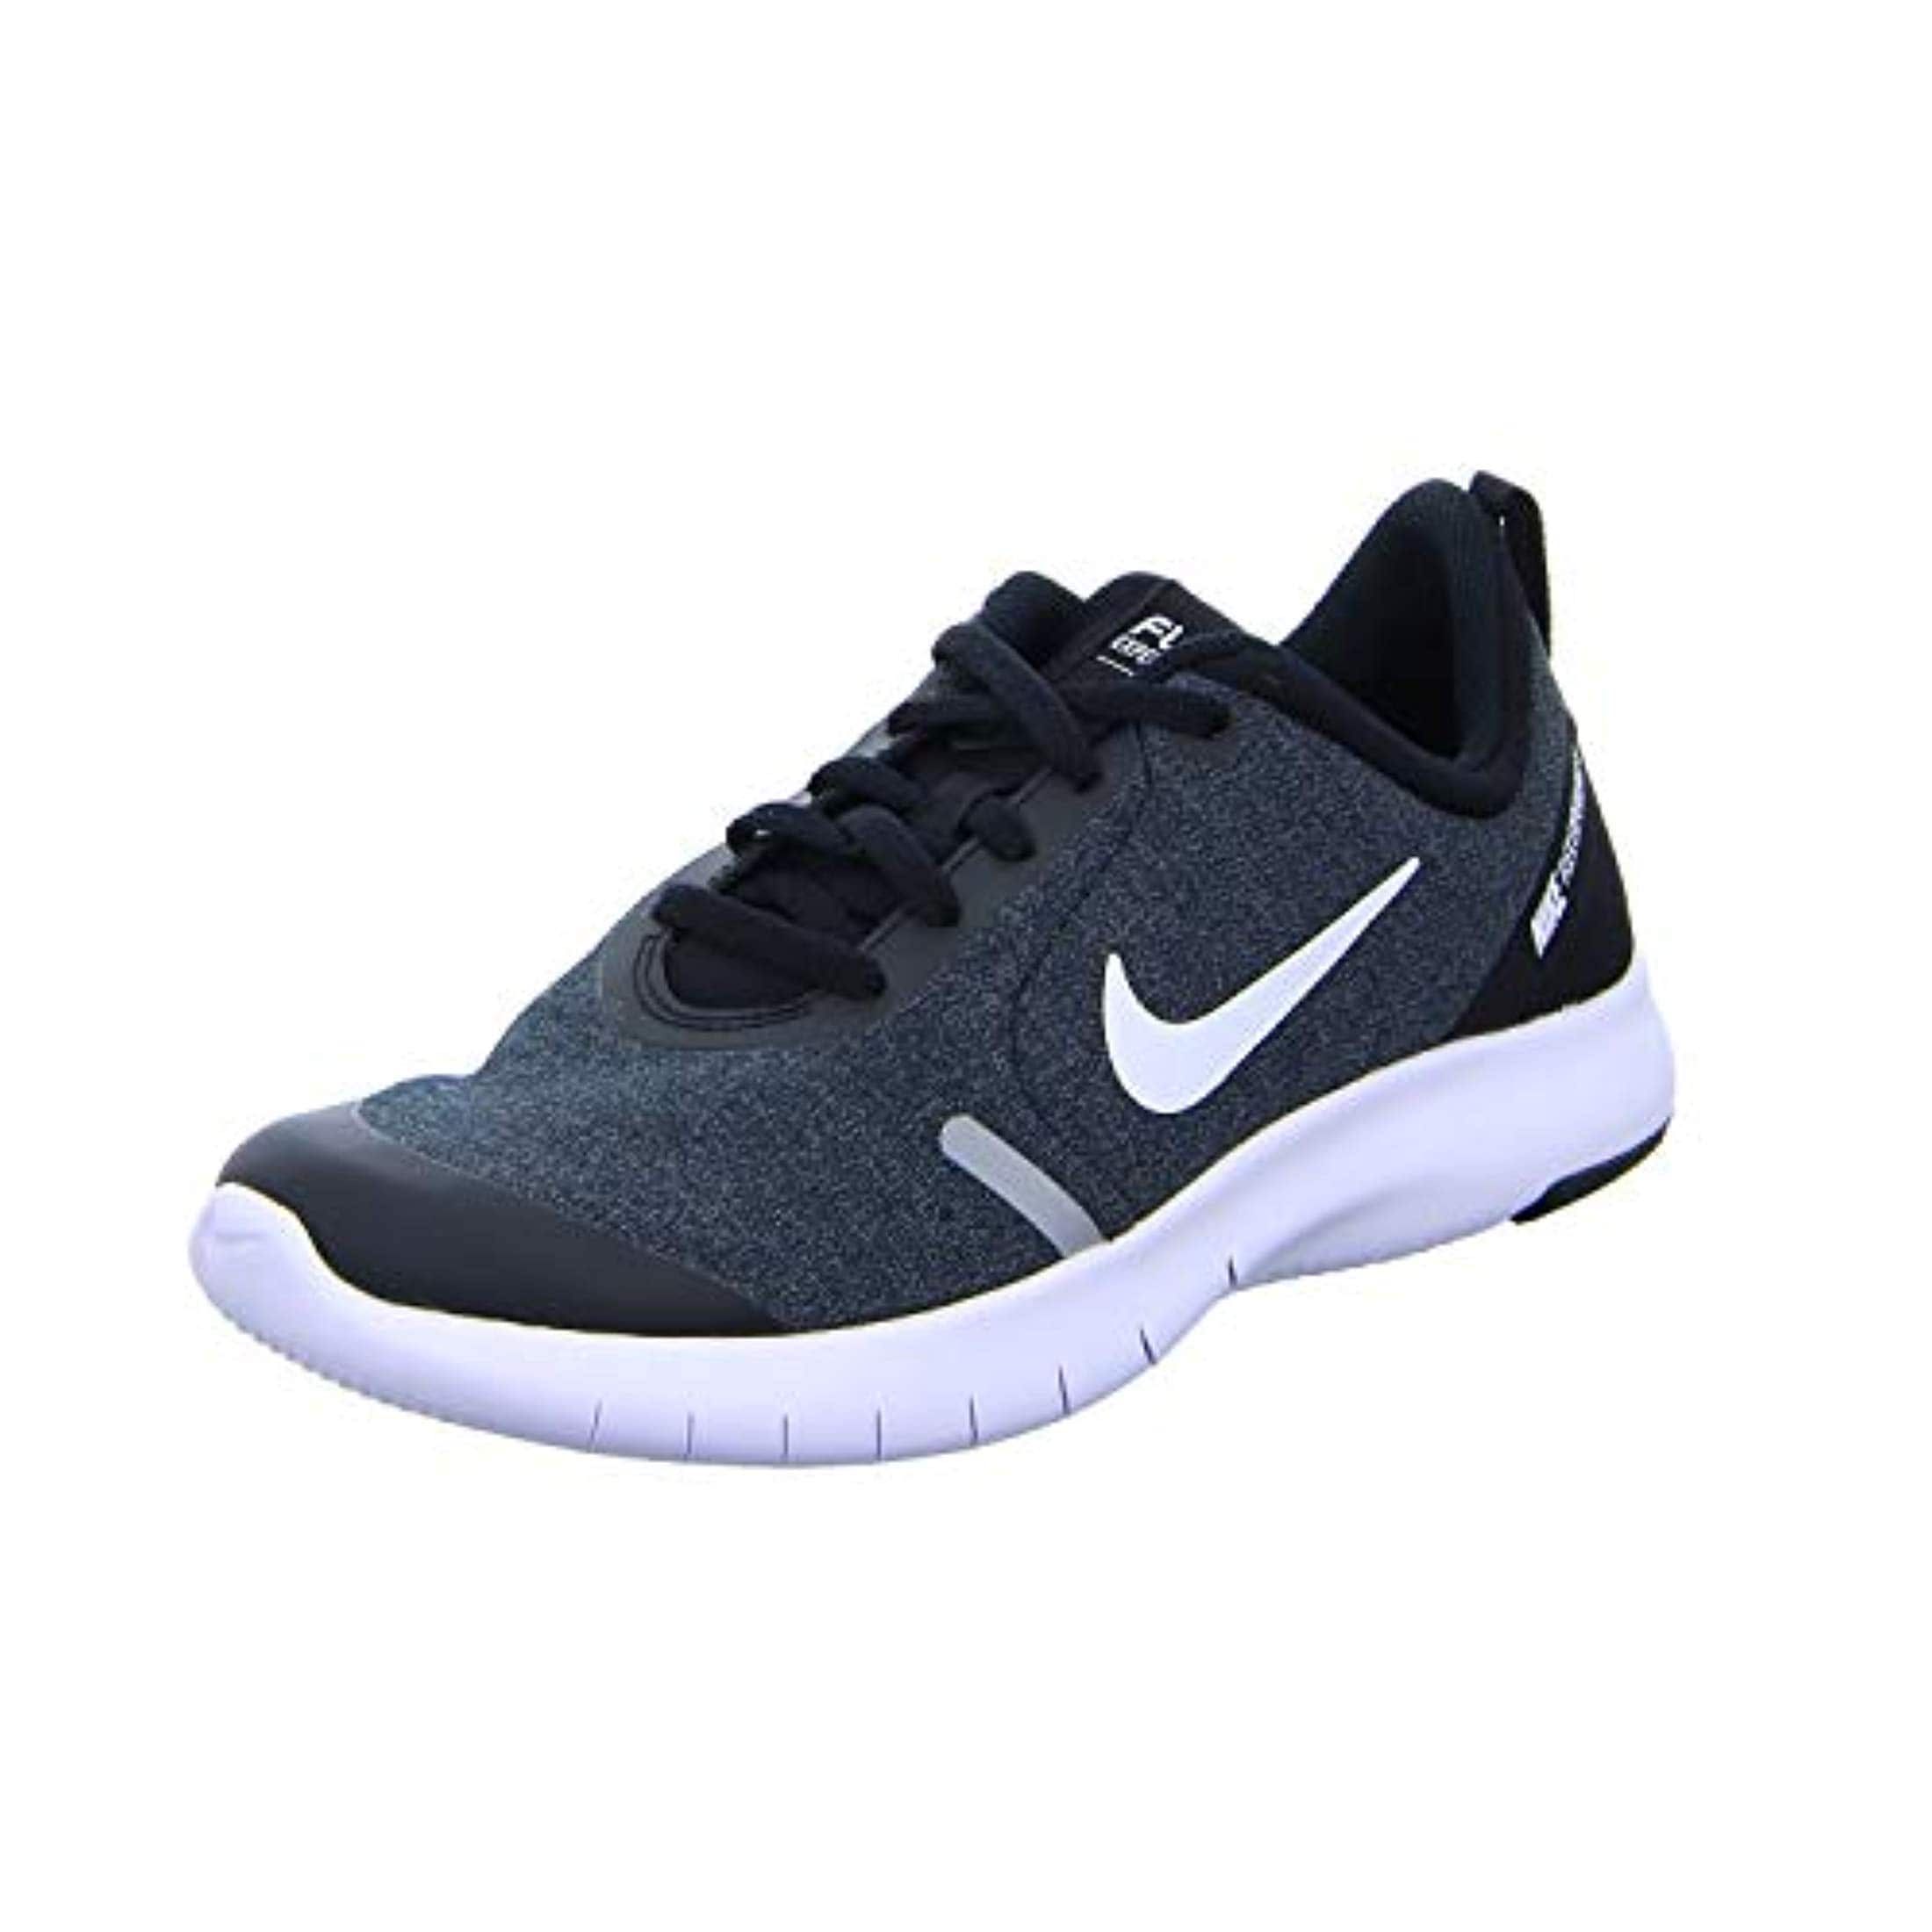 new arrivals ef92f 28ab5 Shop Nike Boy s Flex Experience Rn 8 Running Shoe Black White Cool  Grey Reflect Silver - Free Shipping Today - Overstock - 27126034